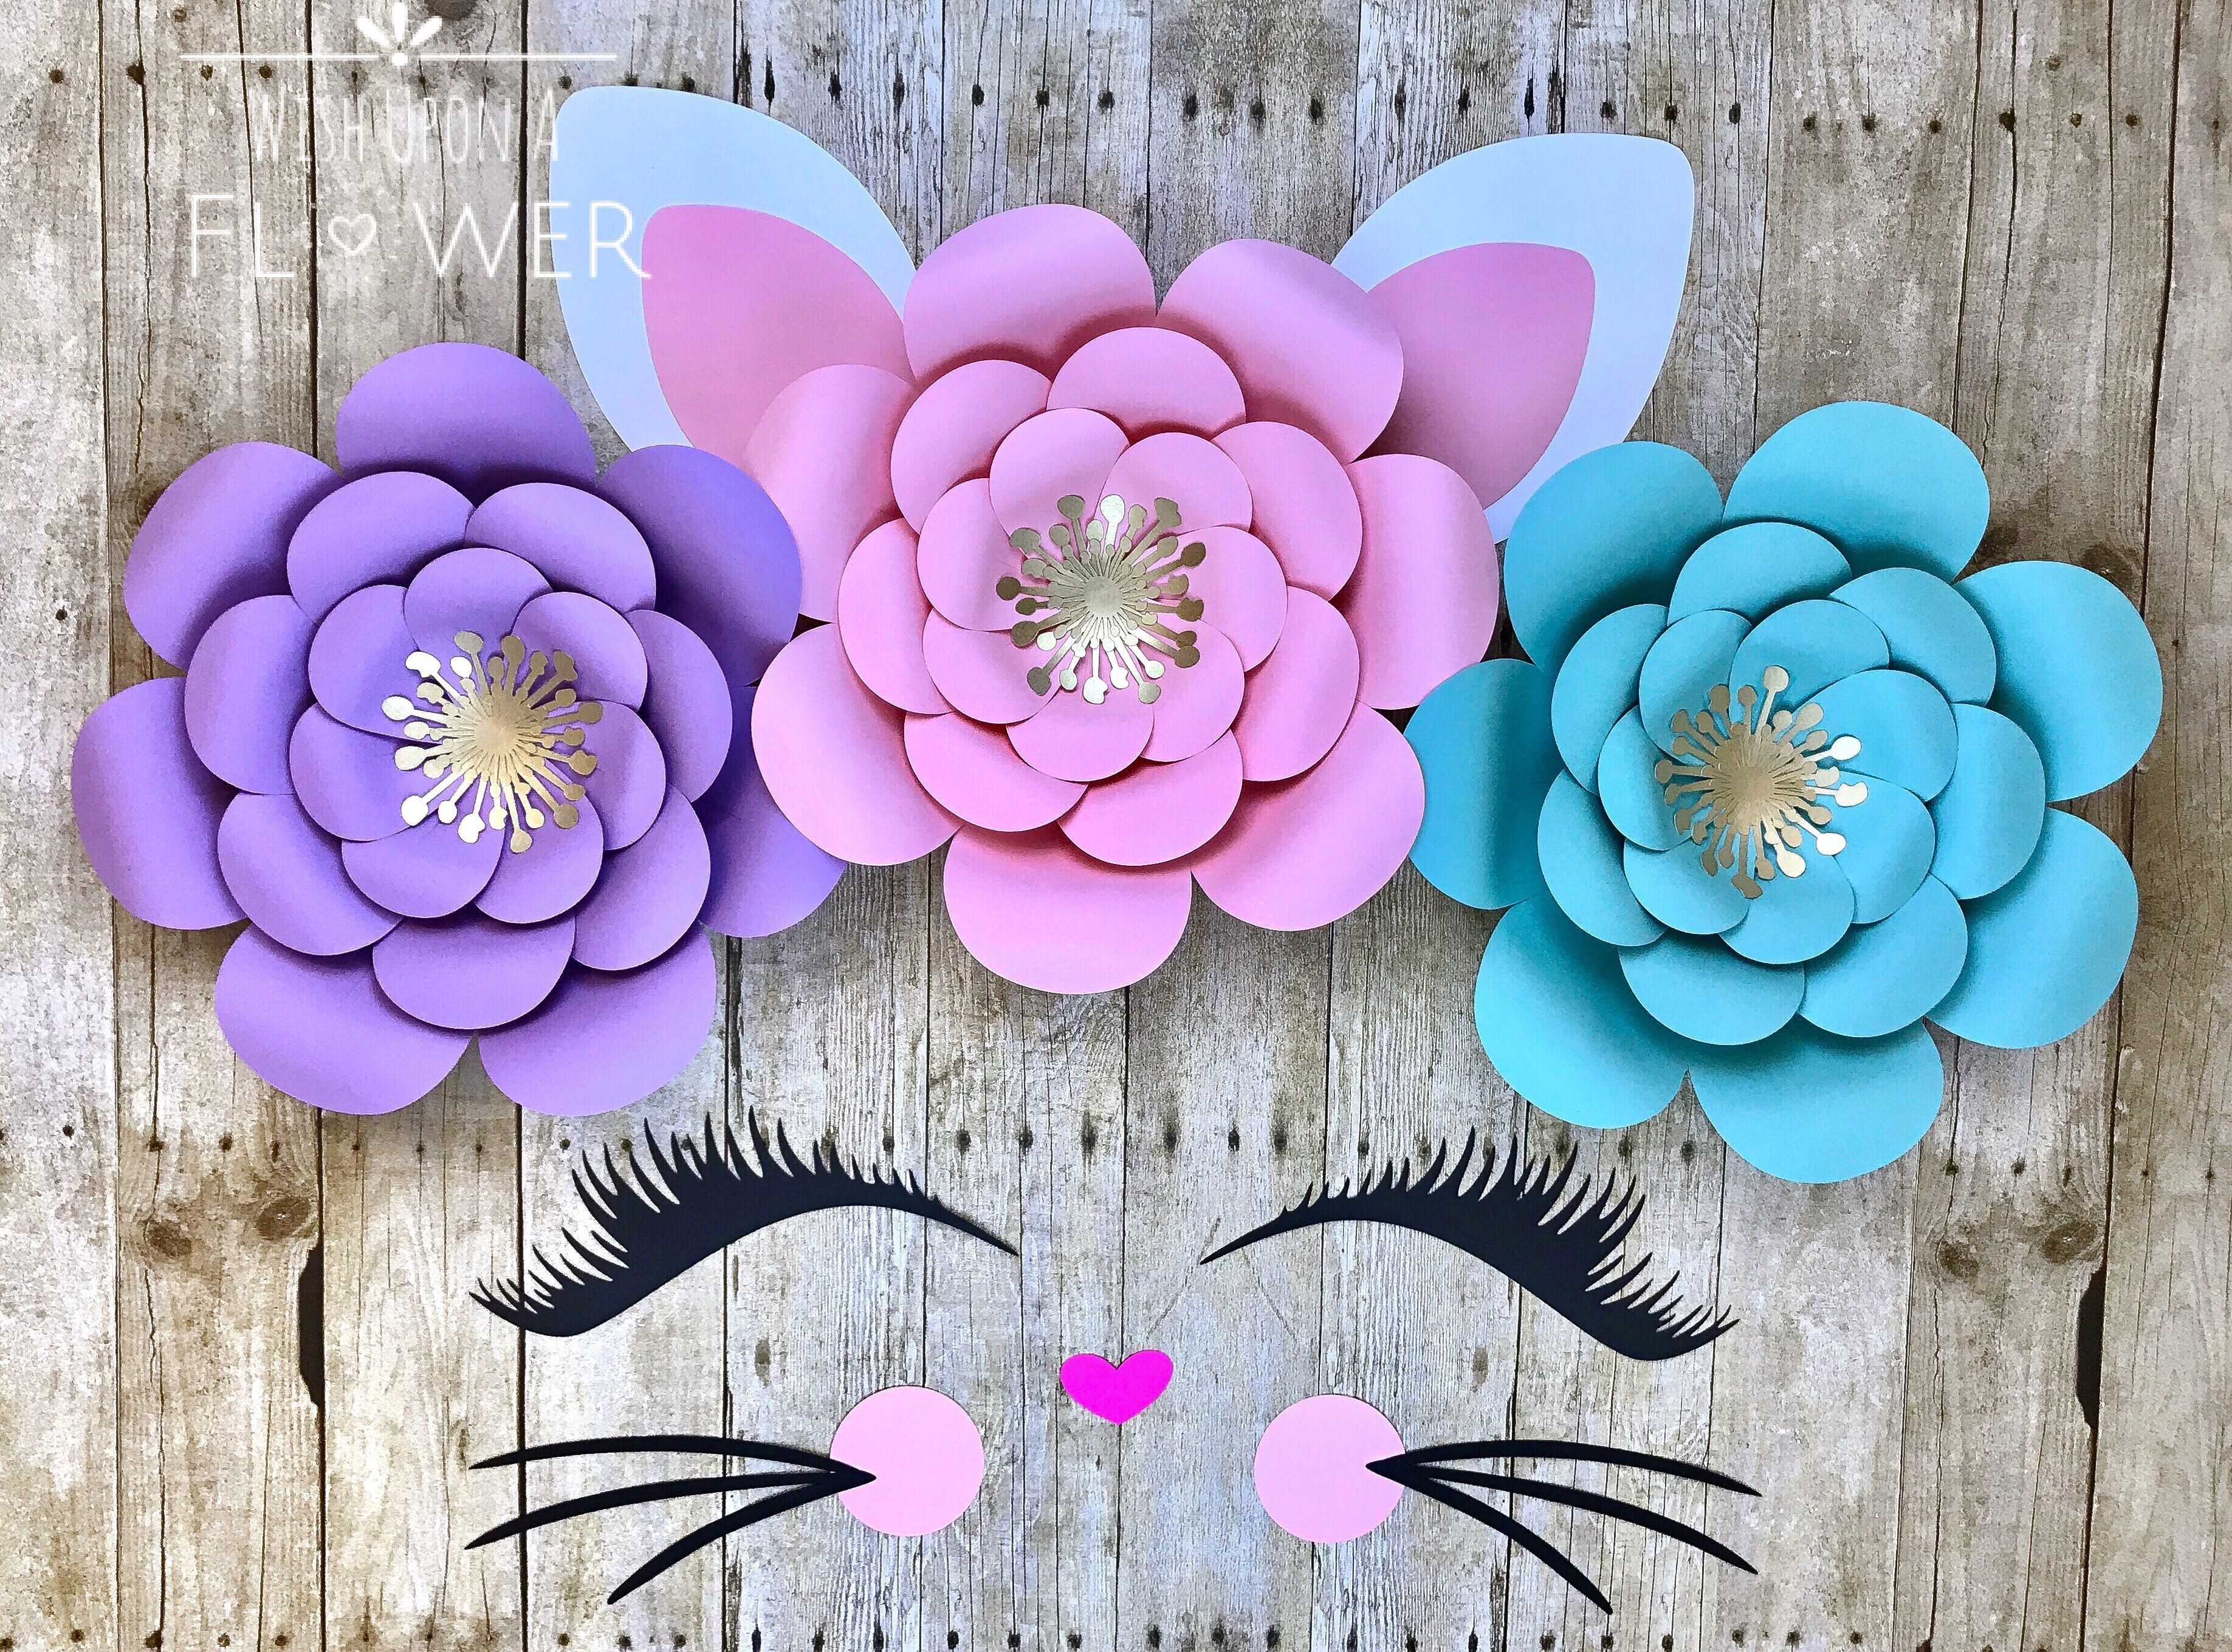 Kitty Party Cat Party Kitty Decorations Cat Decorations Etsy Paper Flower Arrangements Kitten Party Kitten Birthday